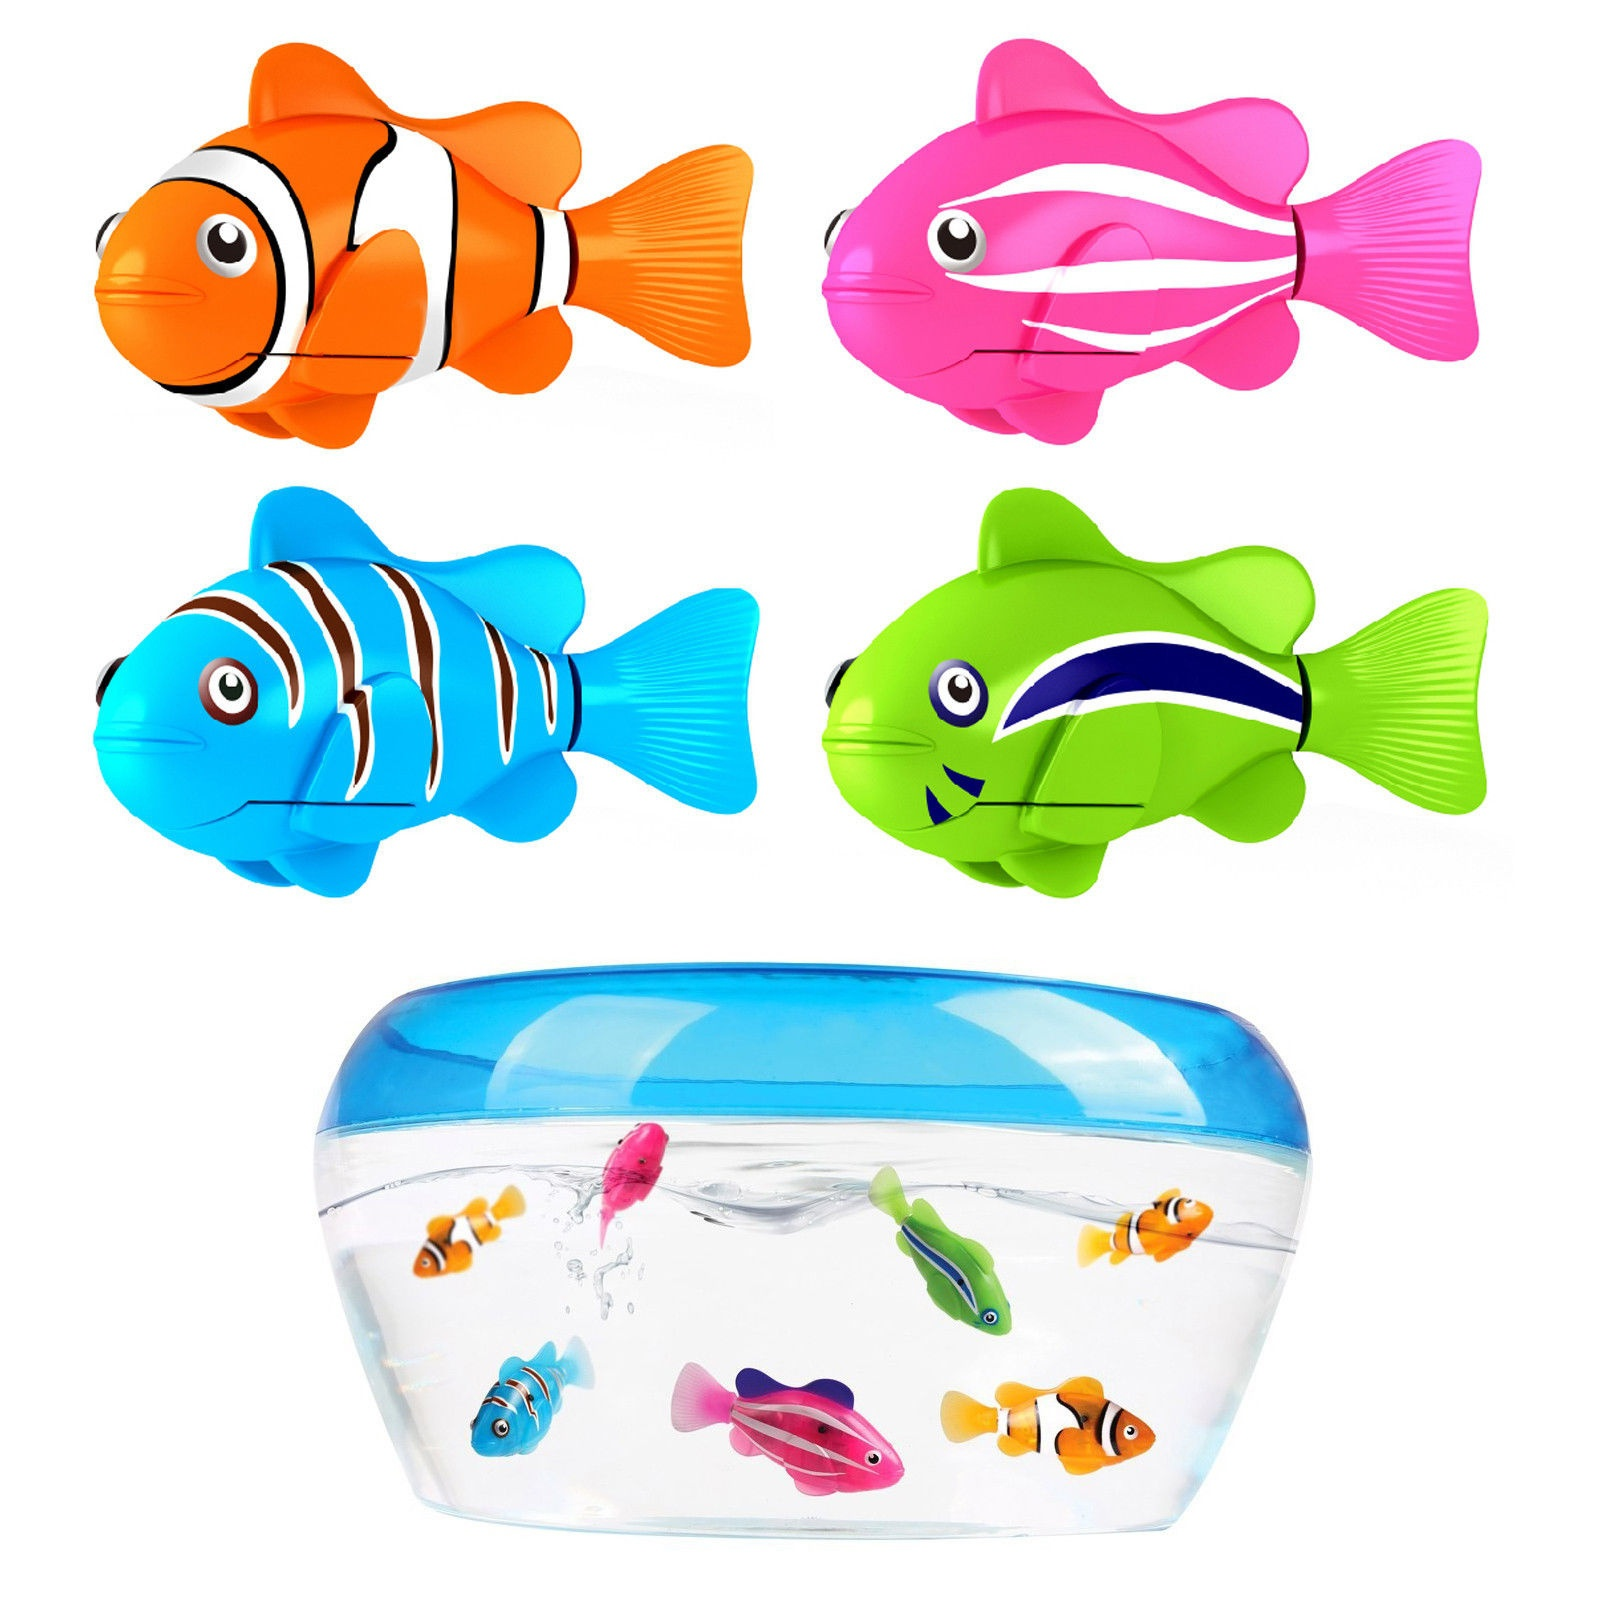 2018 New Funny Toy Clownfish Nemo Robo Robotic Fish Water Activated Kids Boys Girls Toy 88 guangzhou feie deaf rechargeable hearing aids mini behind the ear hearing aid s 109s free shipping